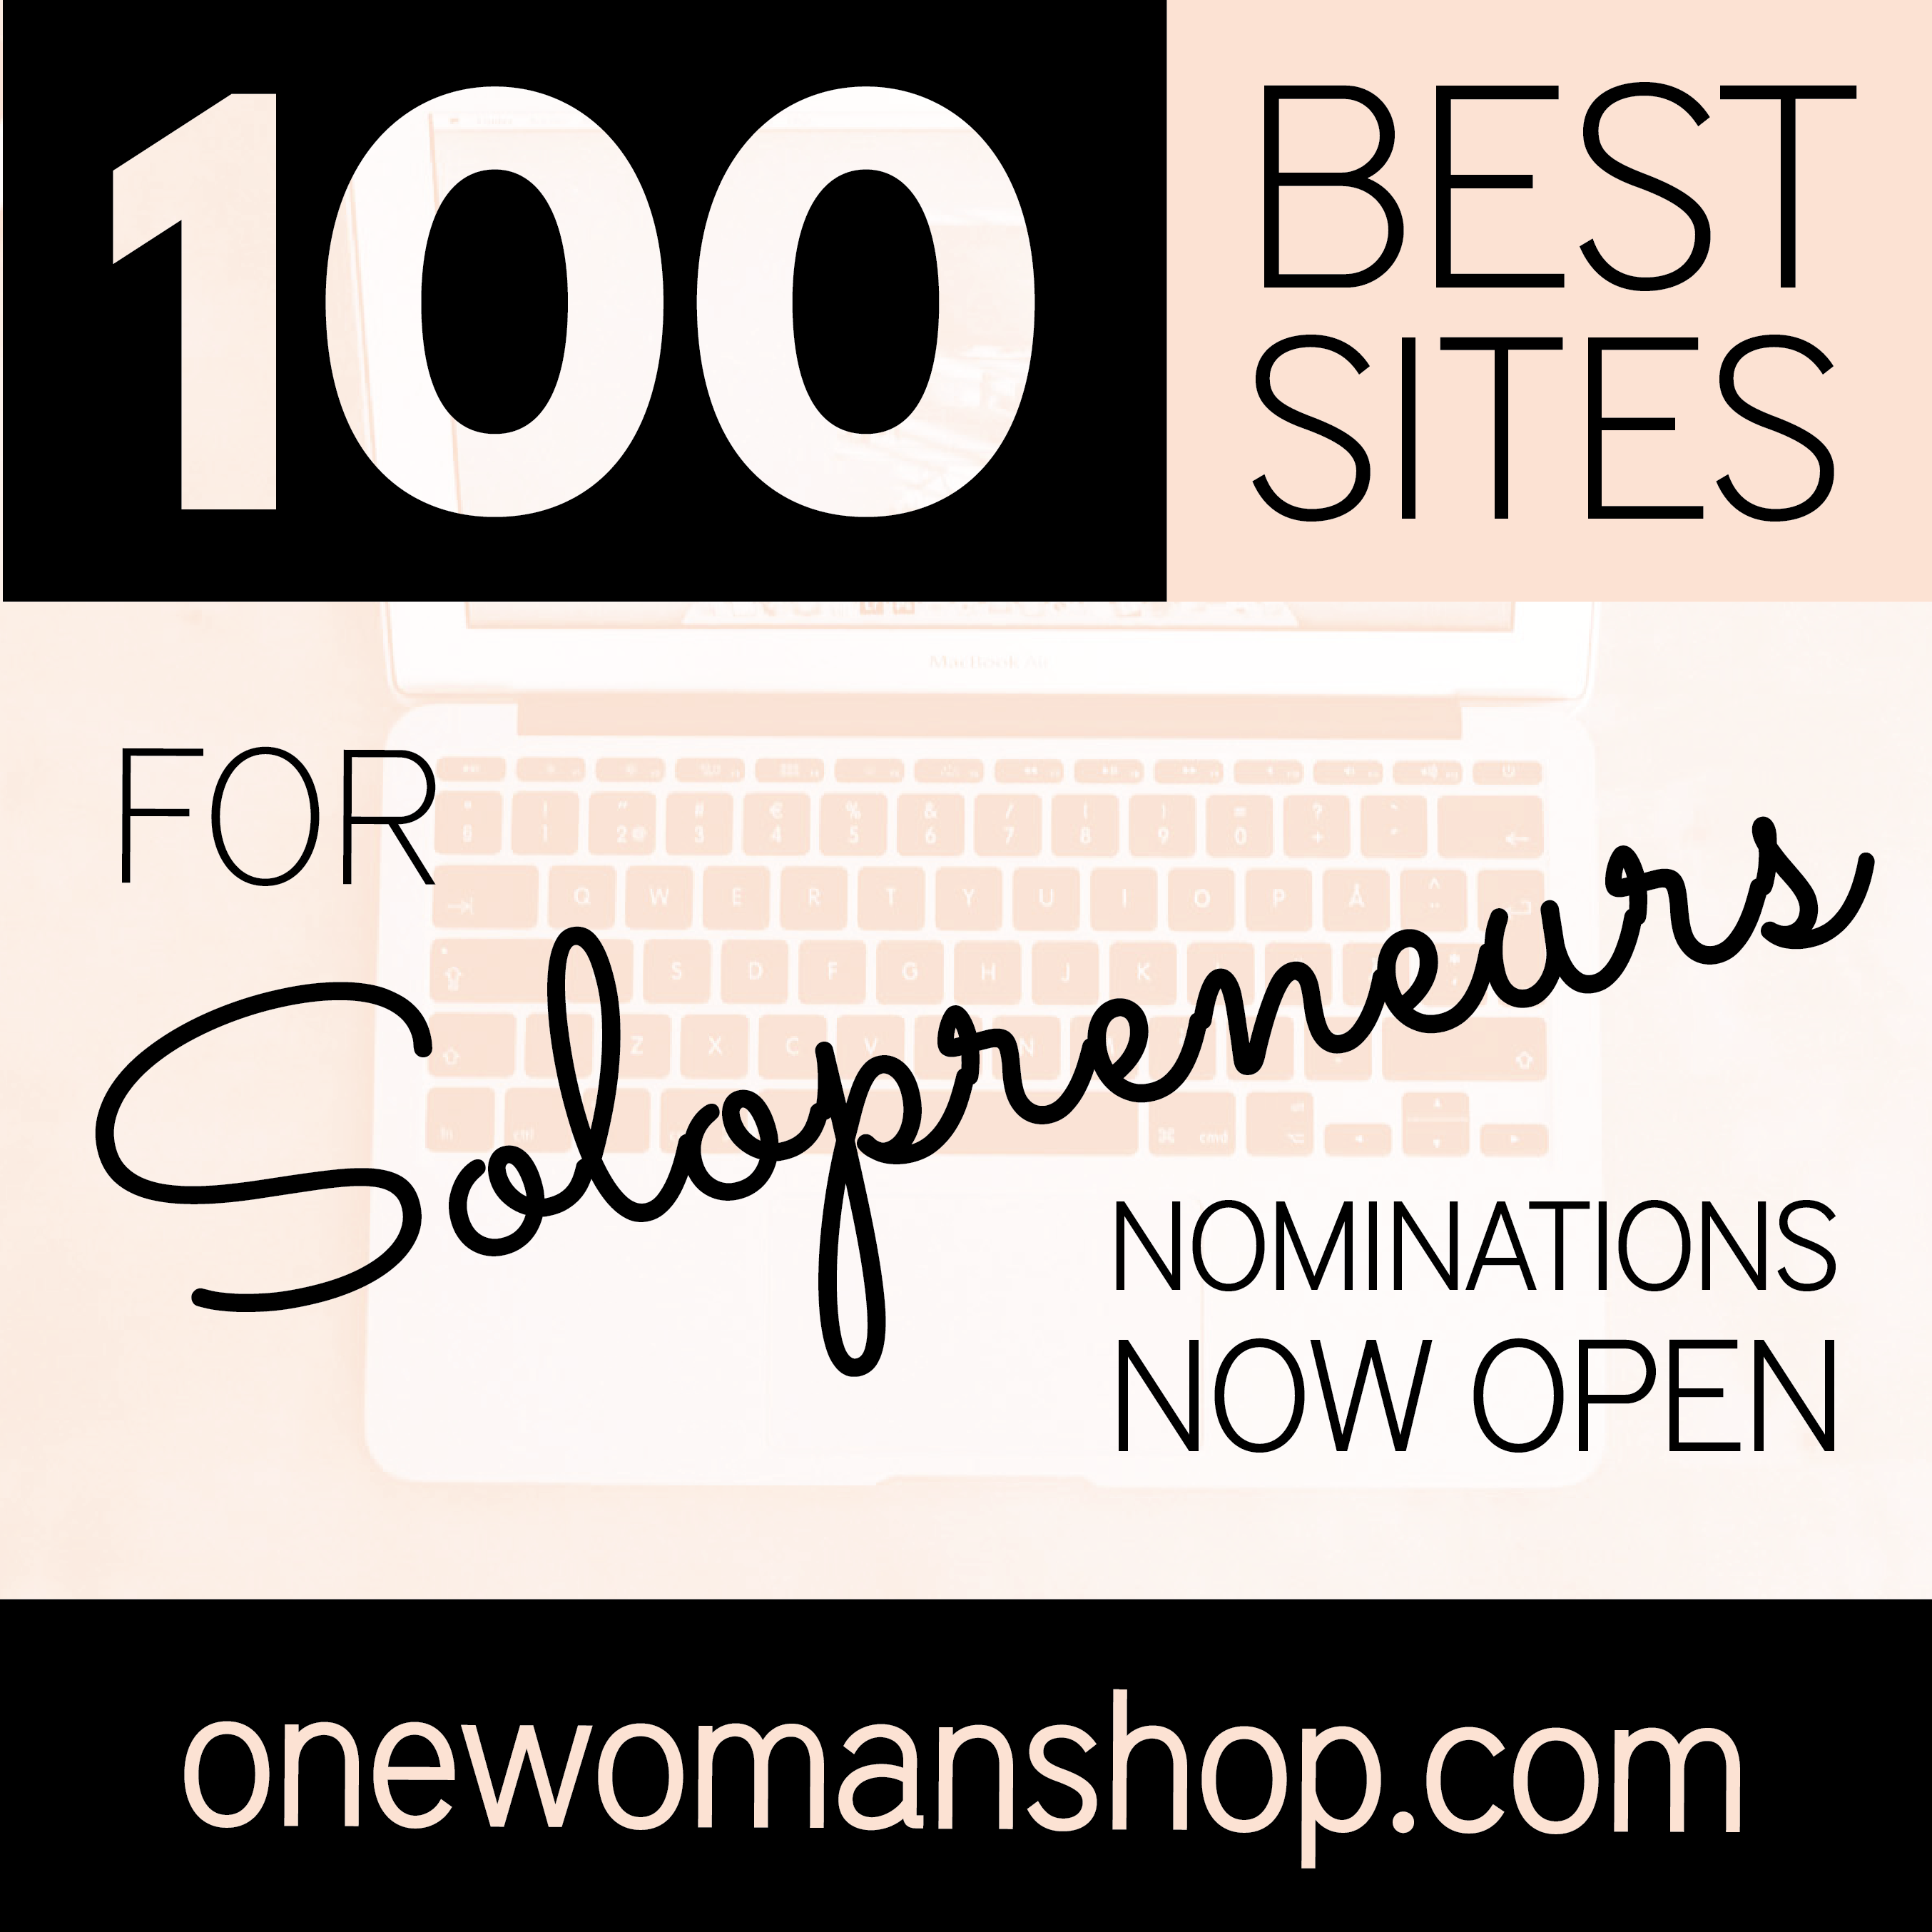 100 Best Sites For Solopreneurs Nominations Now Open Tech Company Logos Best Sites Company Logo